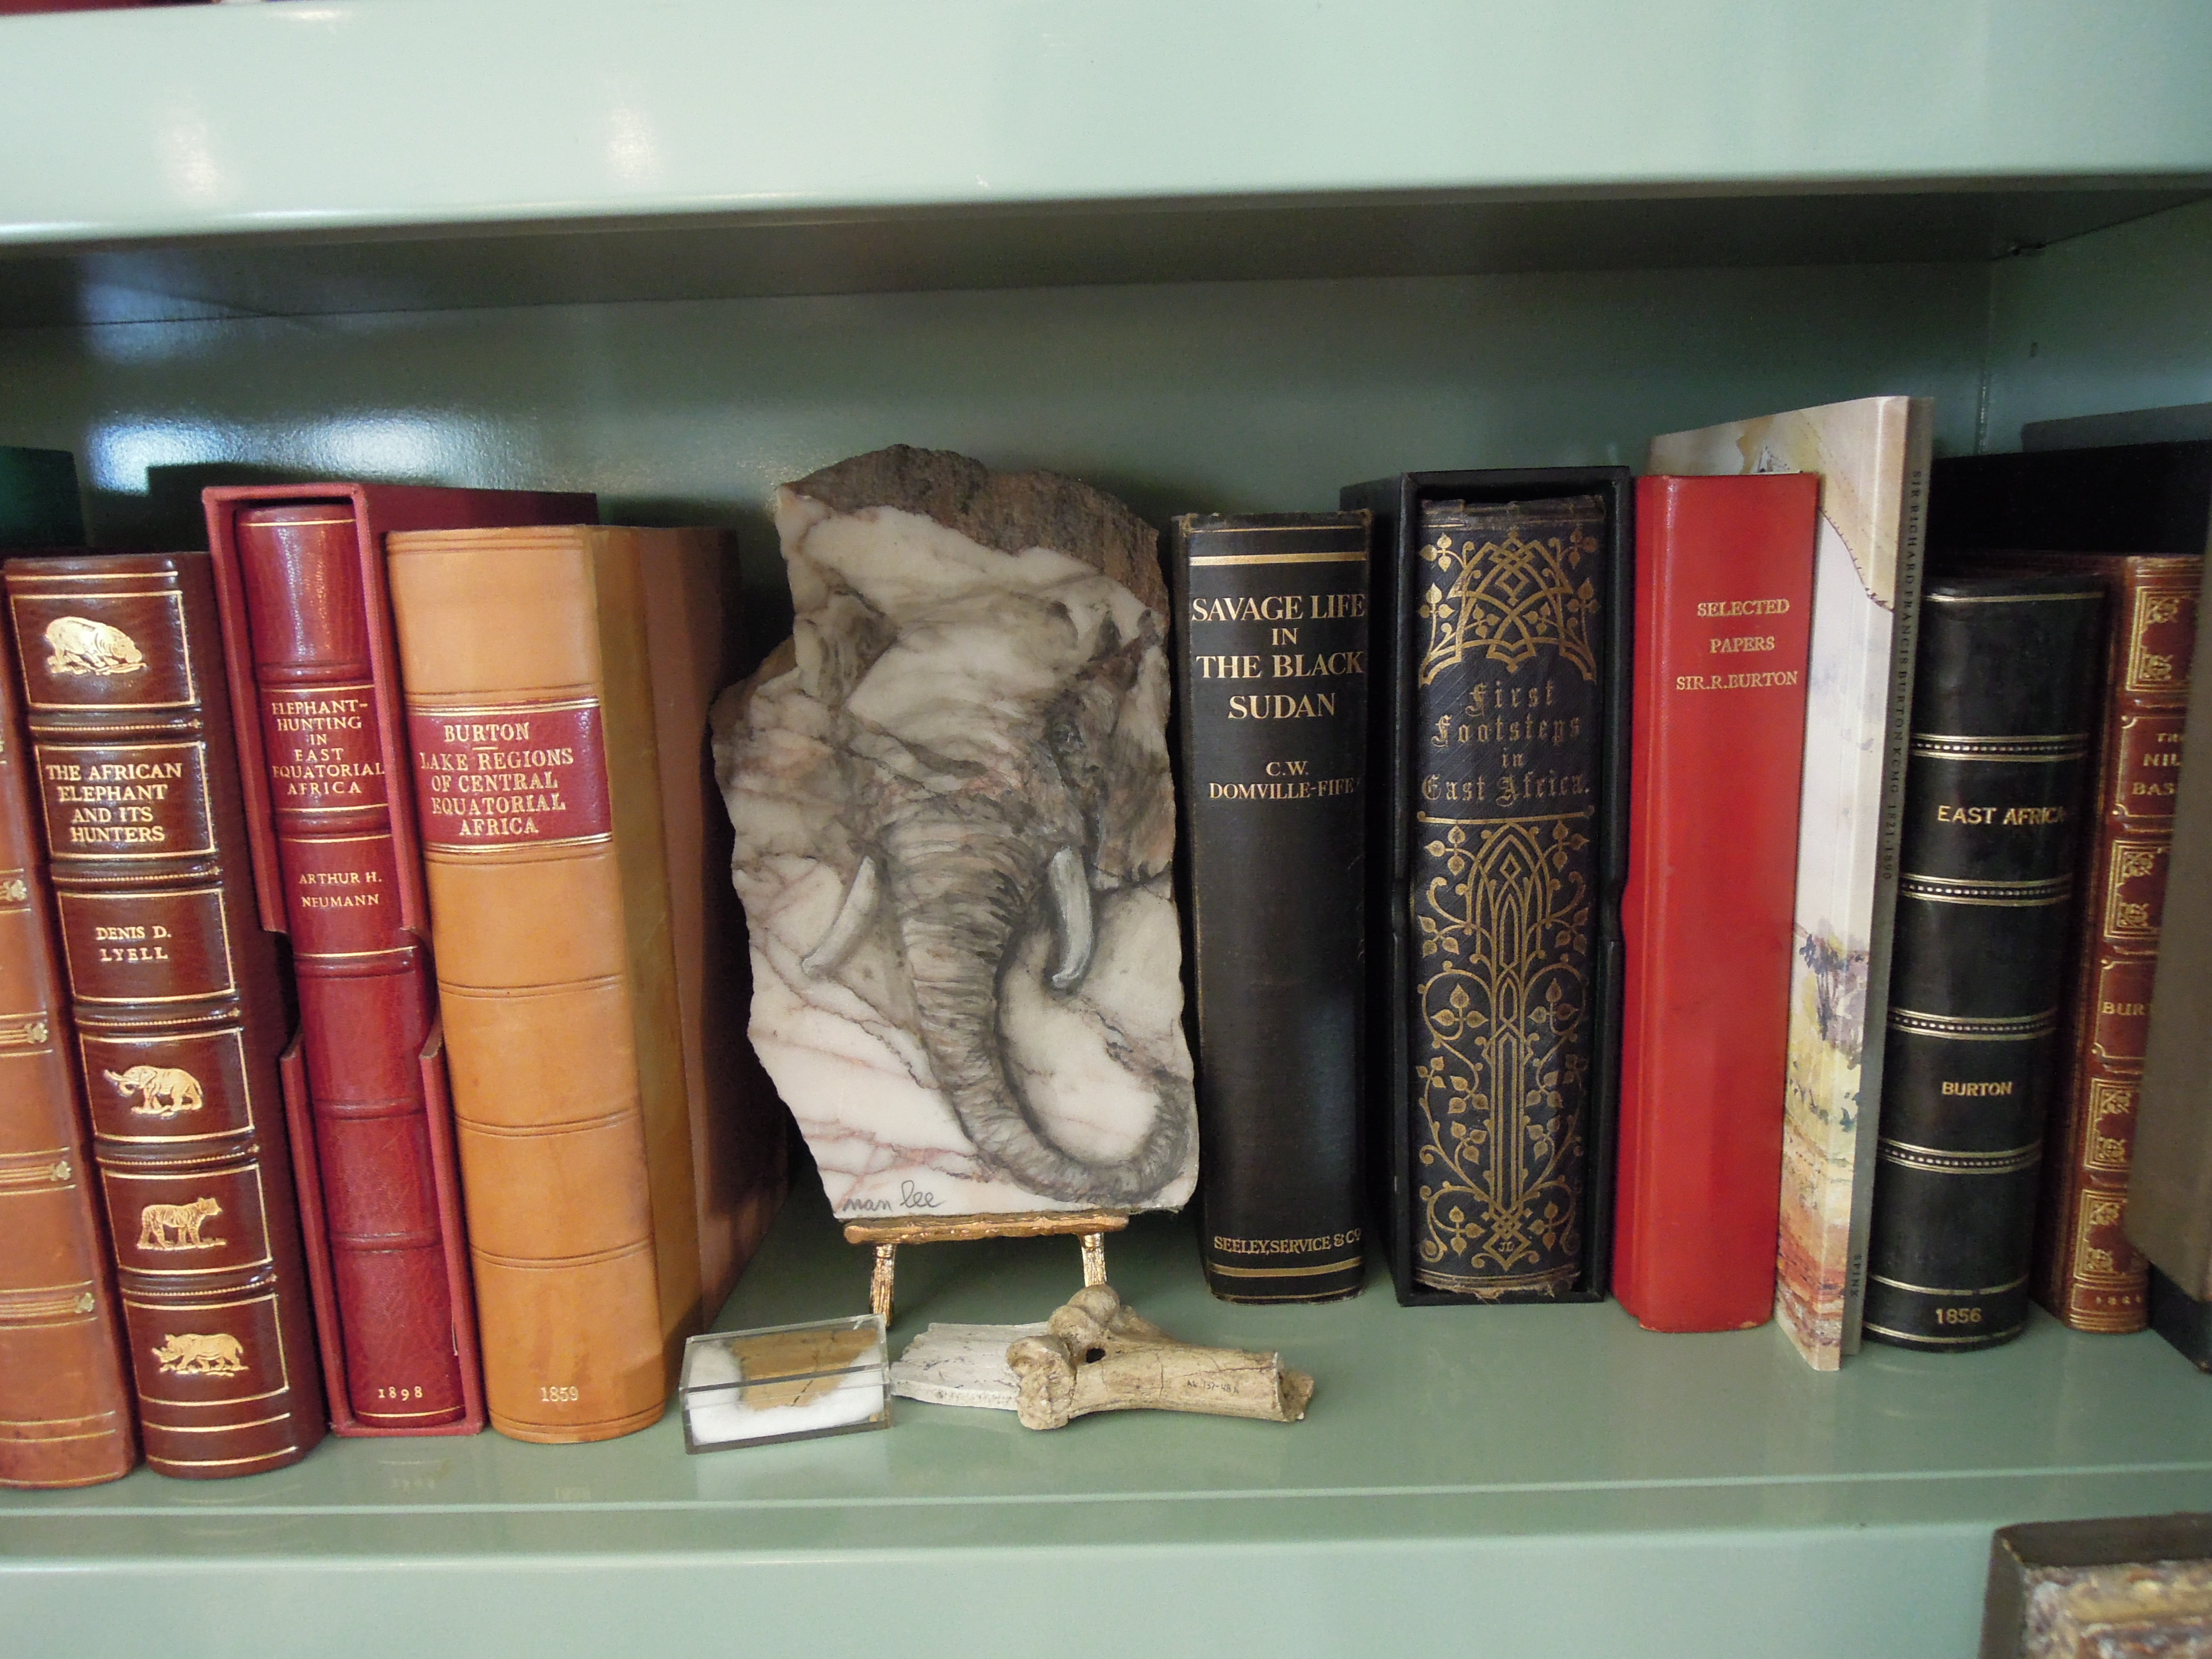 IMG: Books in library